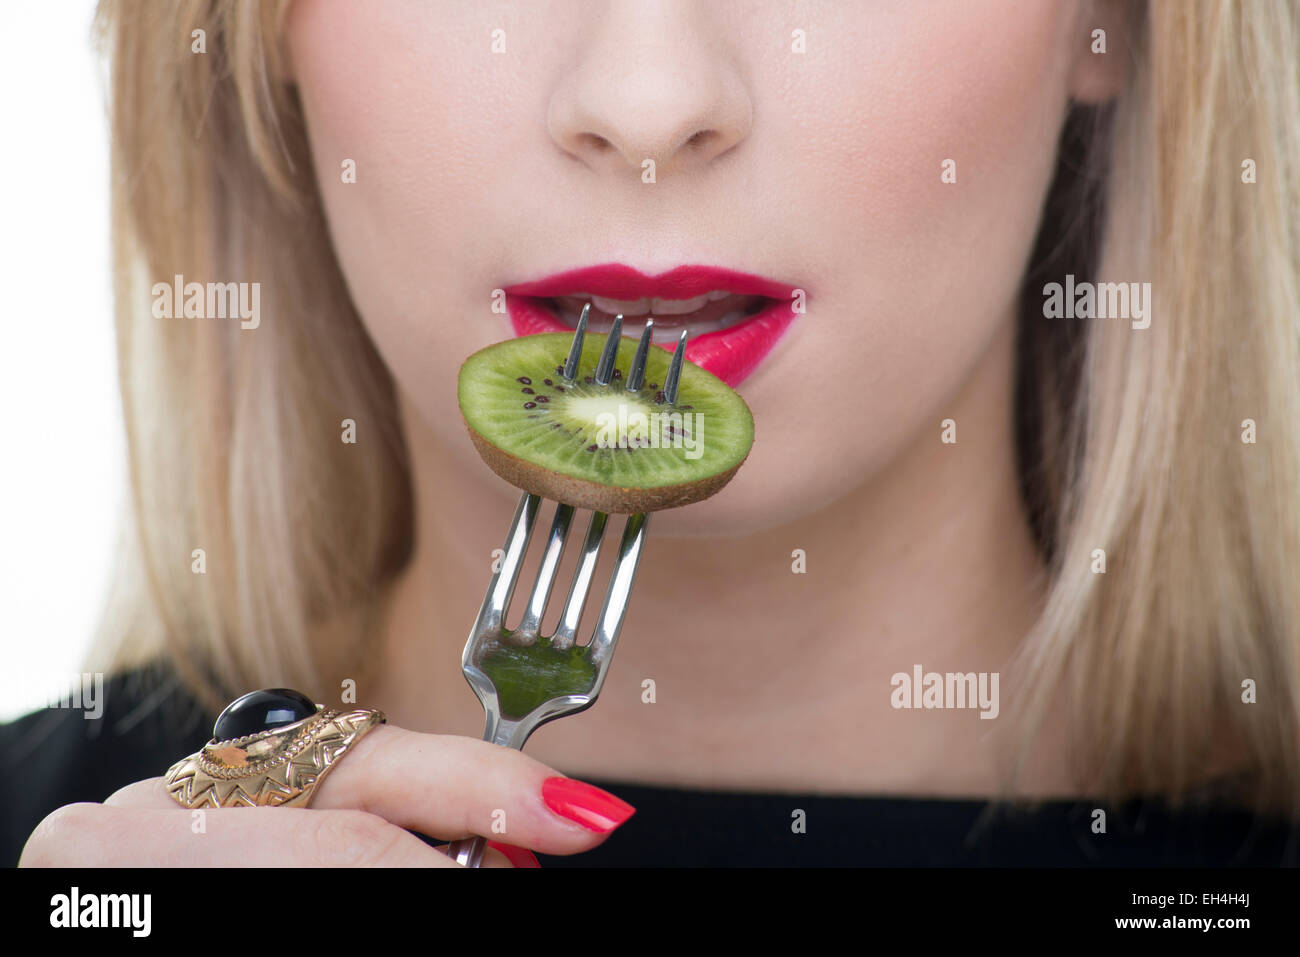 blonde woman eating a kiwi fruit with a fork - Stock Image